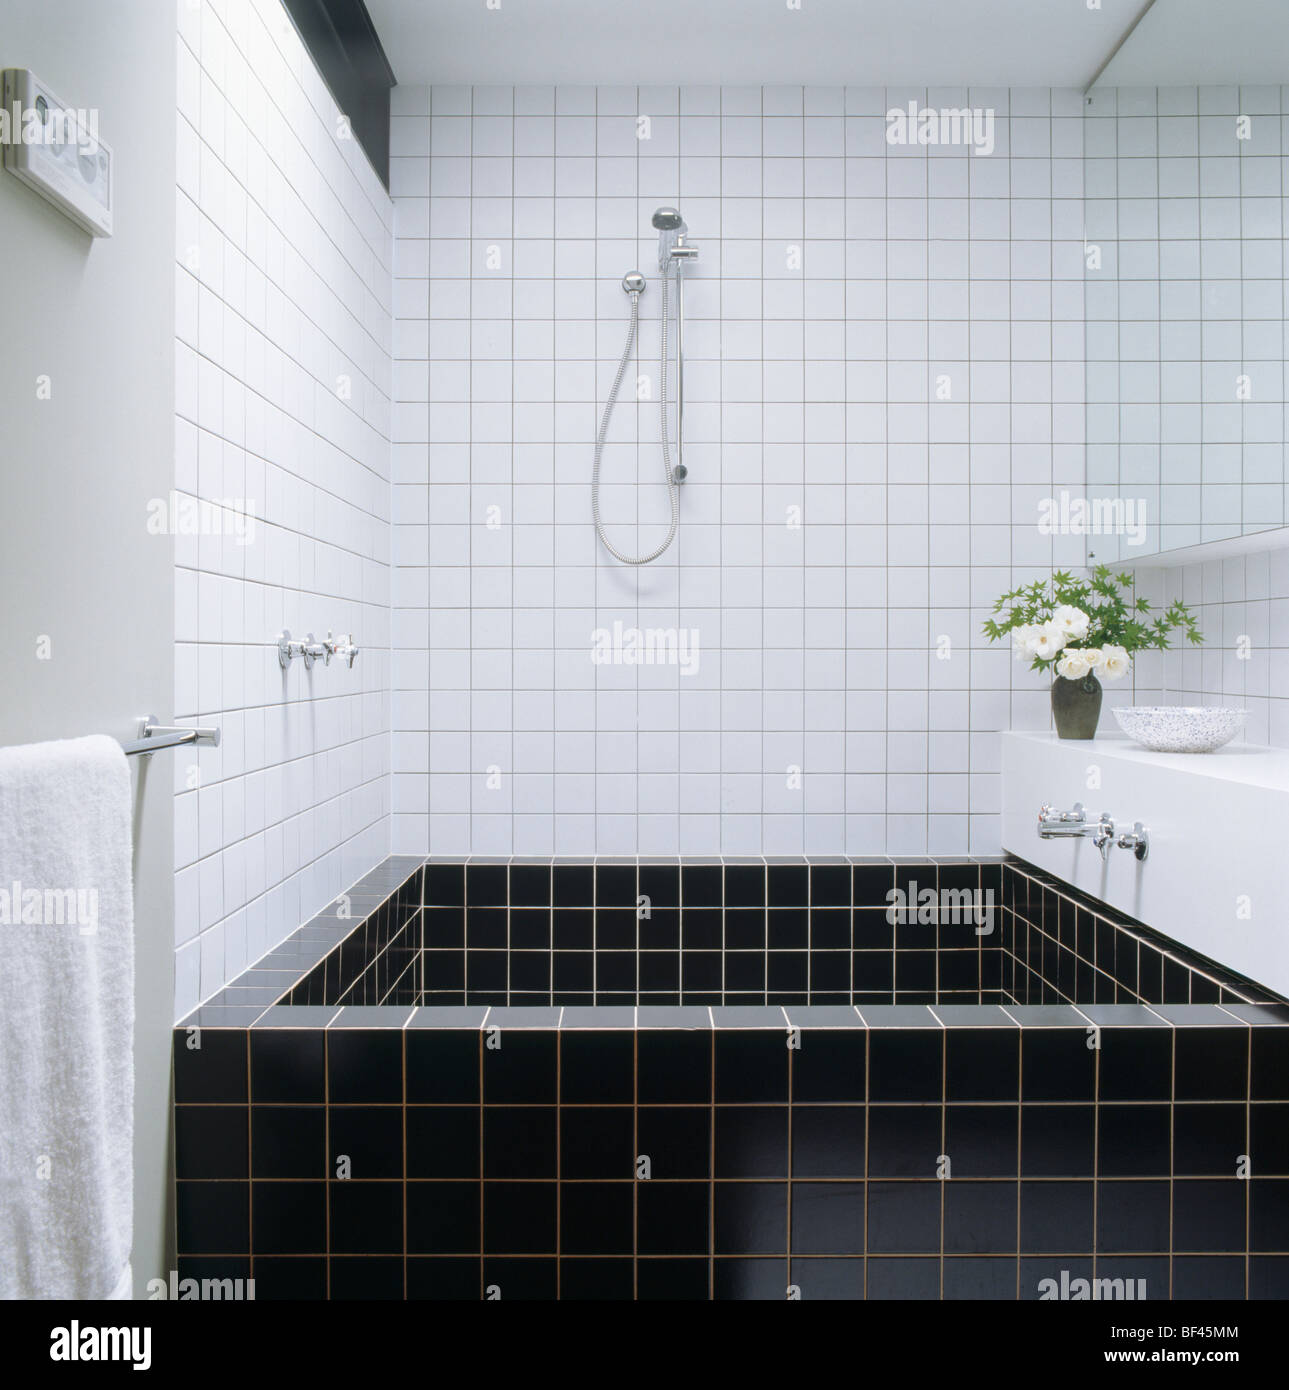 Shower Above Square Black Tiled Bath In Modern White Tiled Bathroom - White square tile bathroom